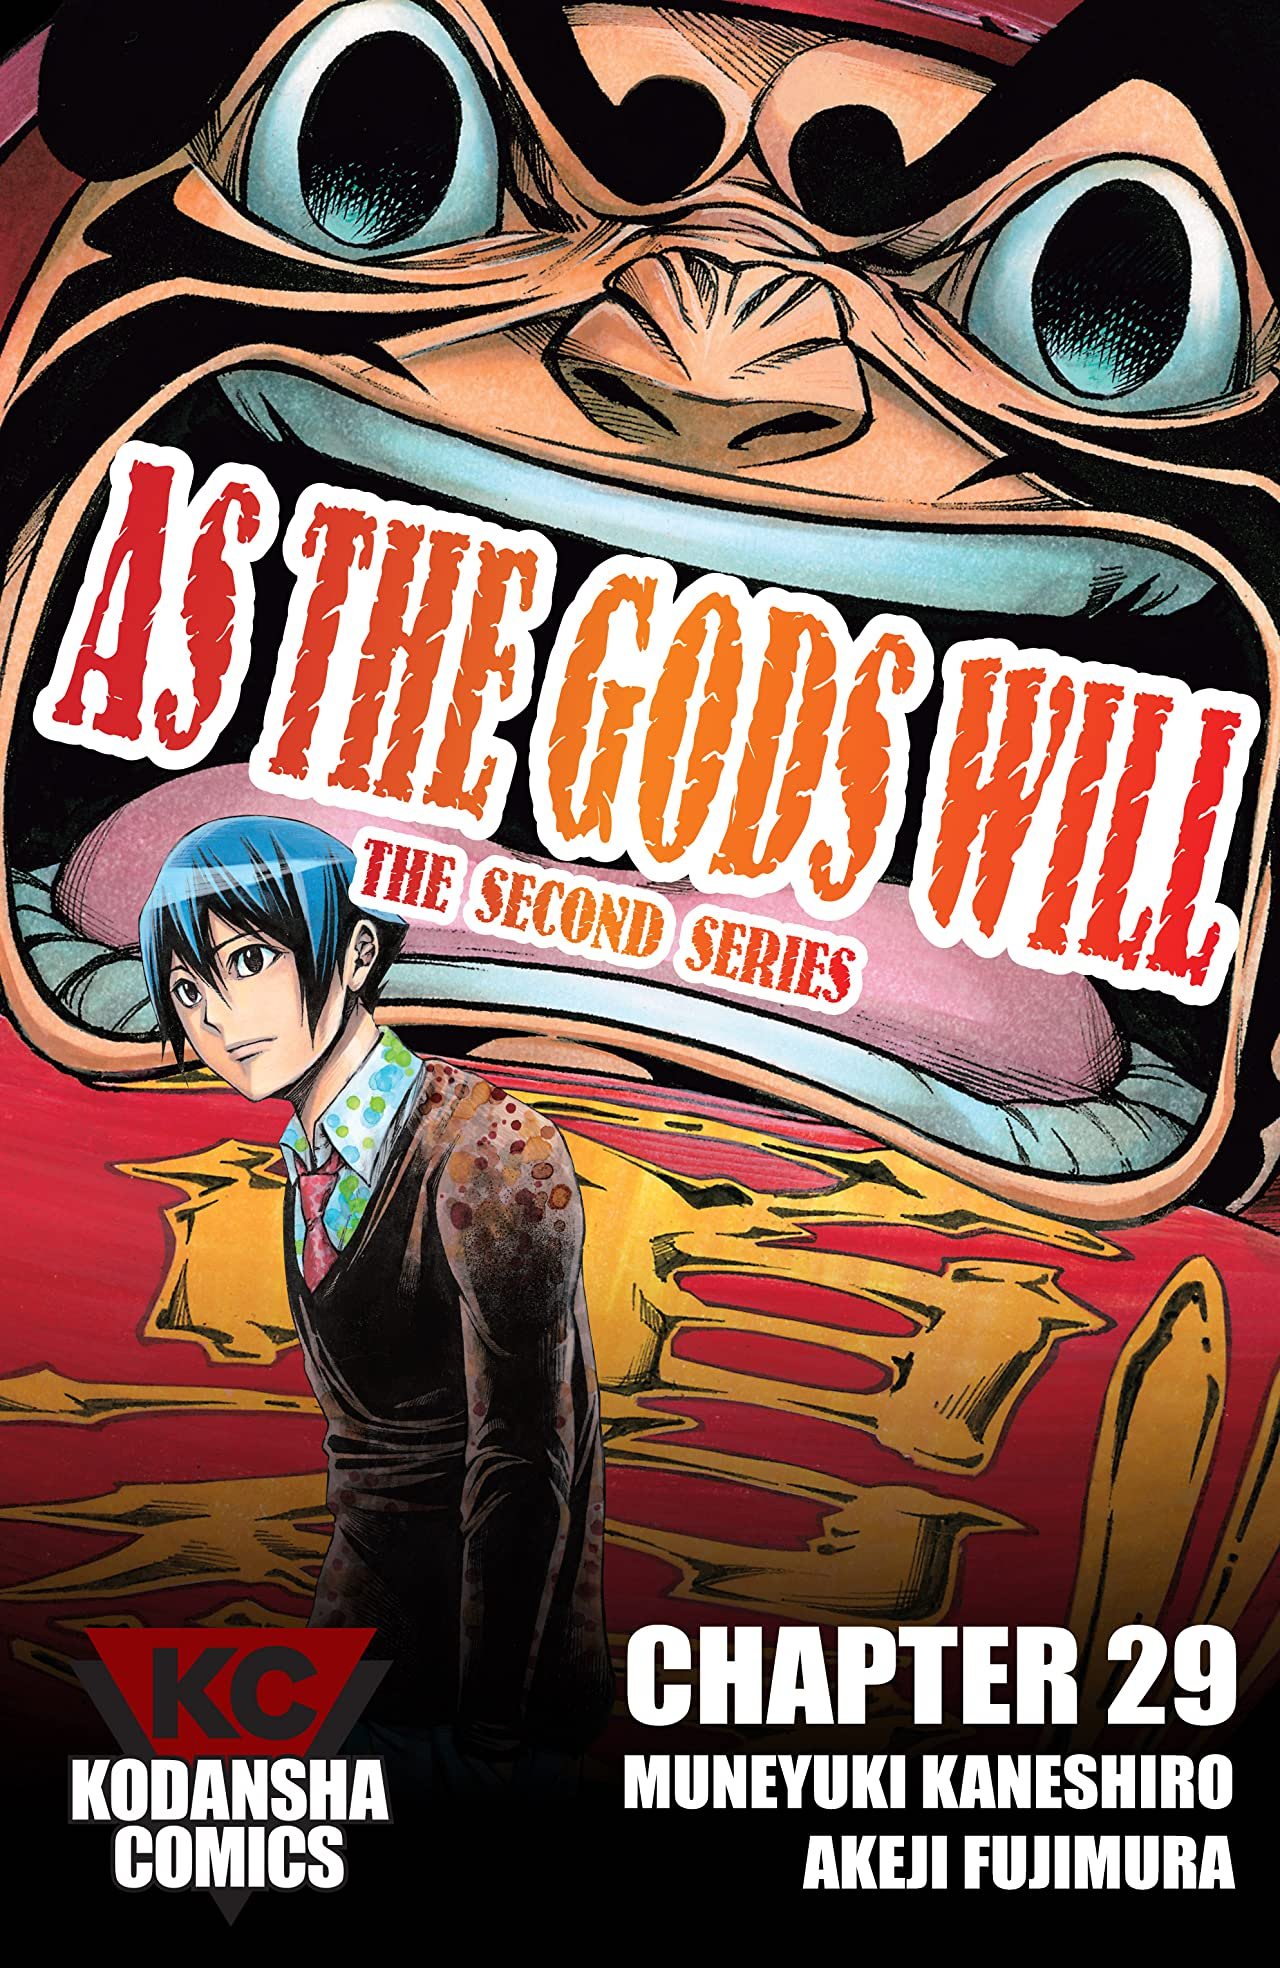 As The Gods Will: The Second Series #29